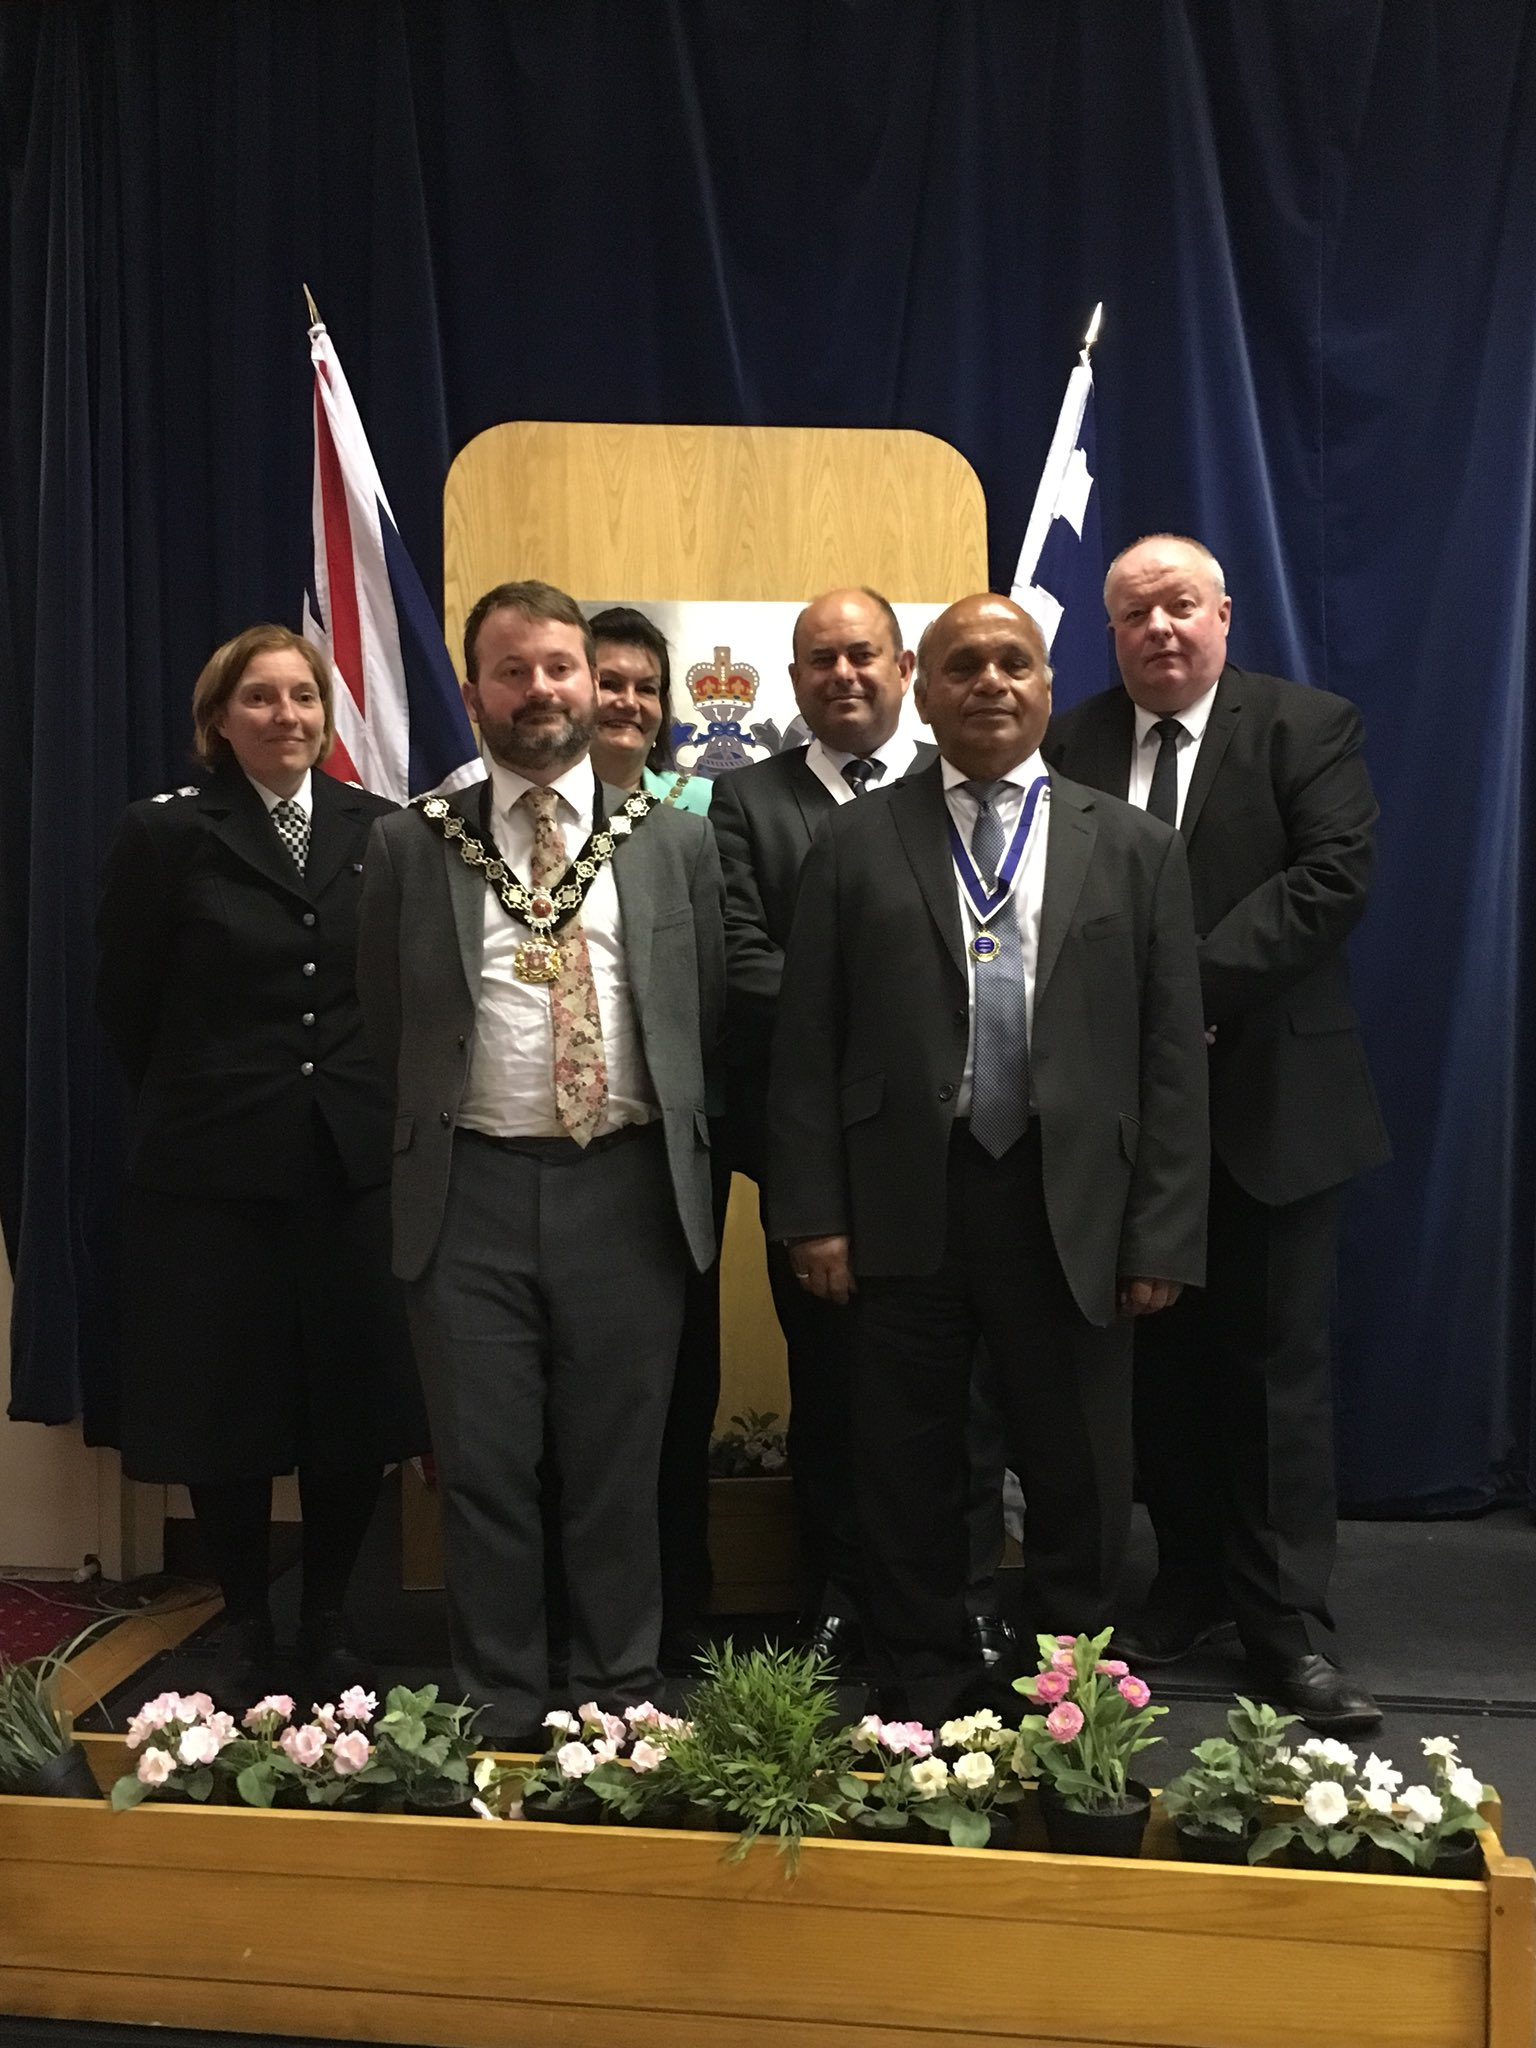 Many thanks to our guests of honour this morning, incl. @MayorOfMerton, @EdwardFoley, @JamesHenryChard, @thayalan_thay & @Peter_Kirkham. Thank you for joining us in celebrating the officers of the #SouthWestBCU https://t.co/JCtDsPAgfY